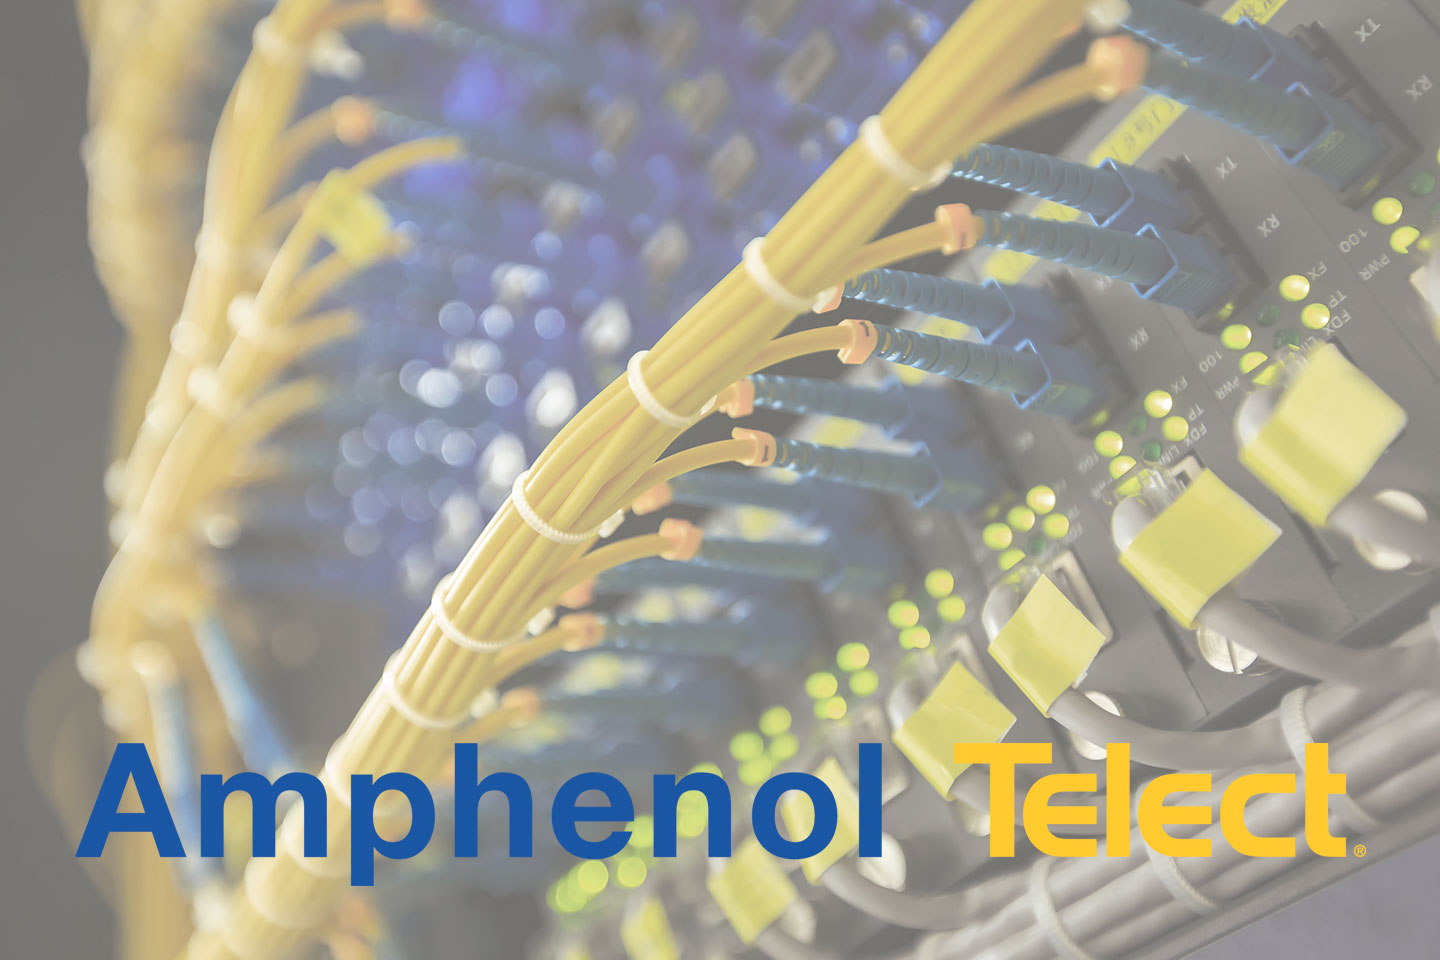 cable management Amphenol Telect